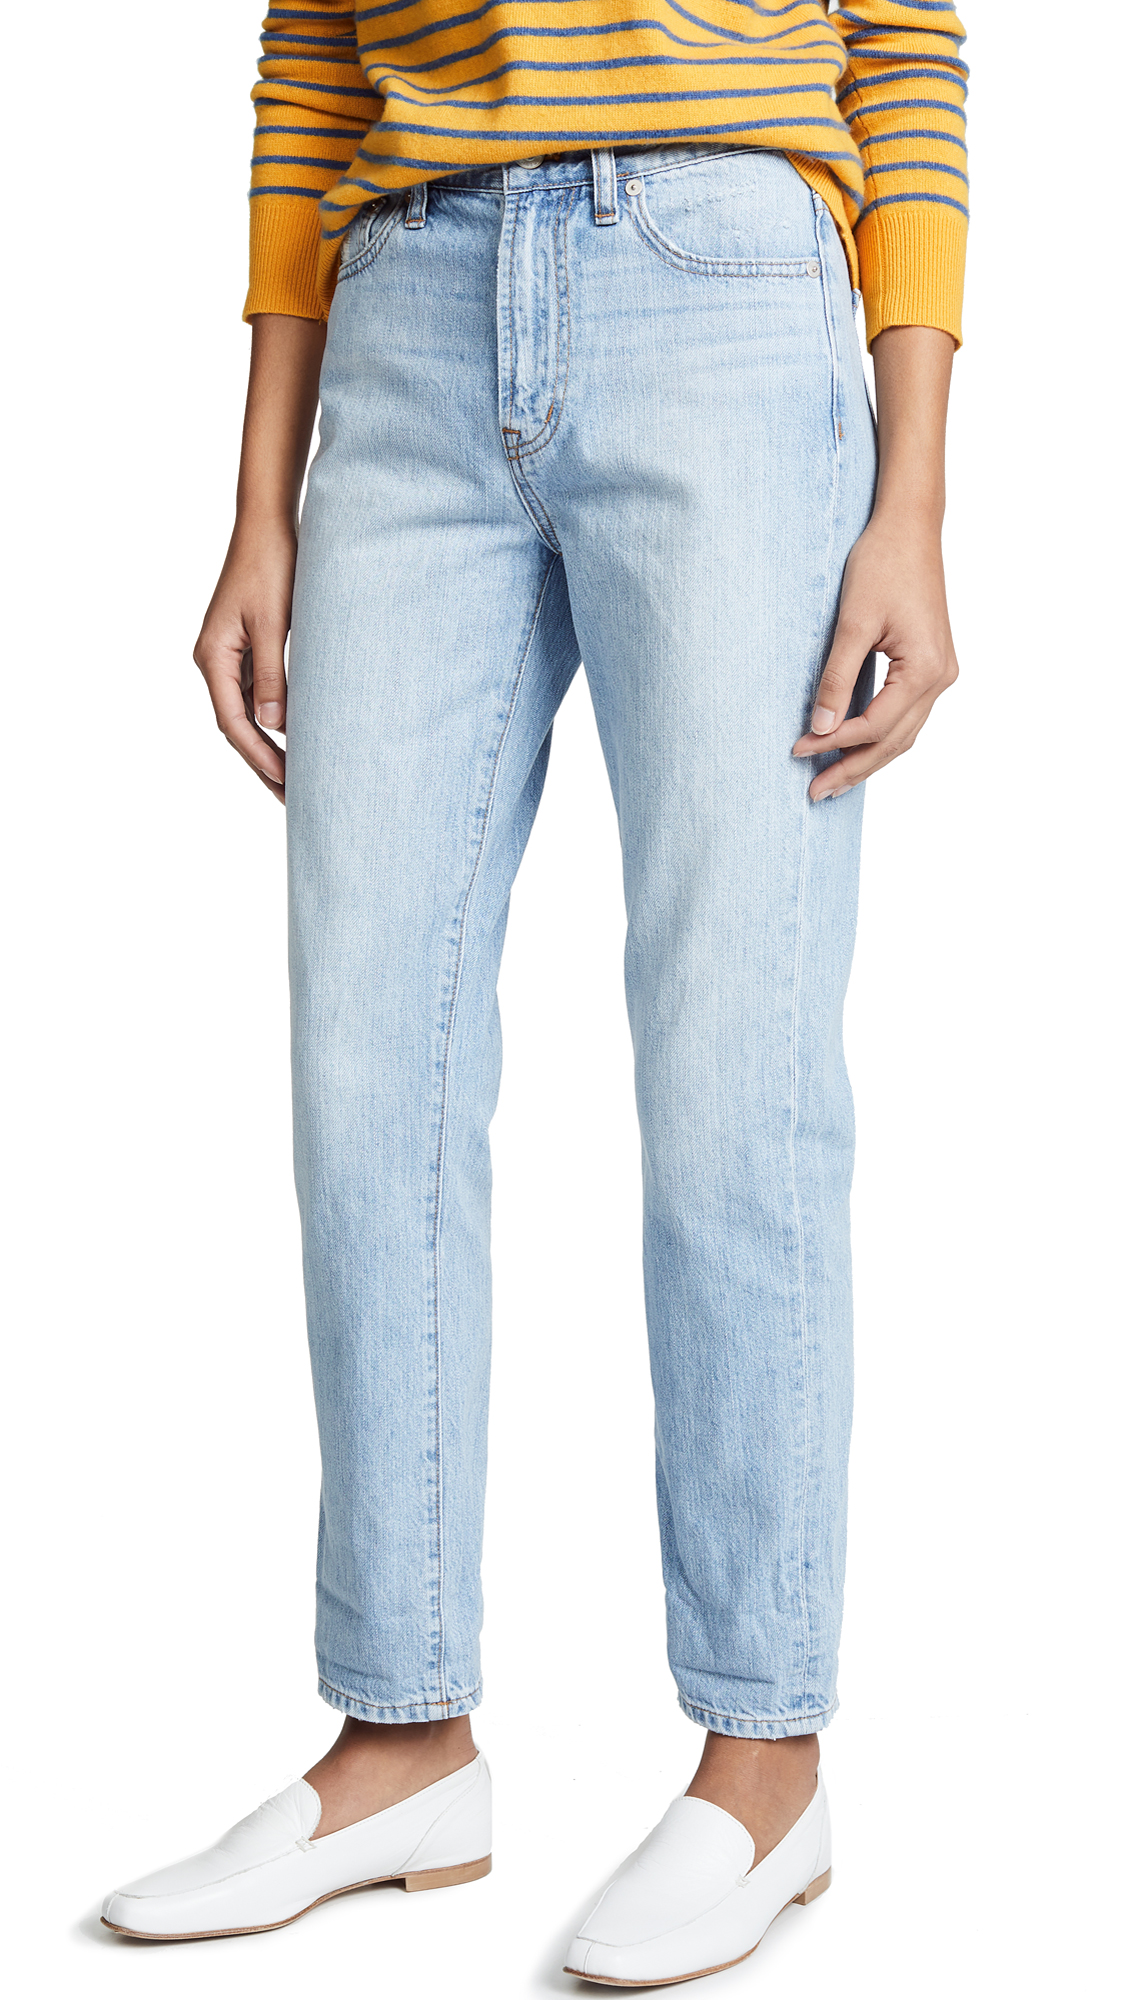 Madewell Perfect Summer Jeans - Fitzgerald Wash